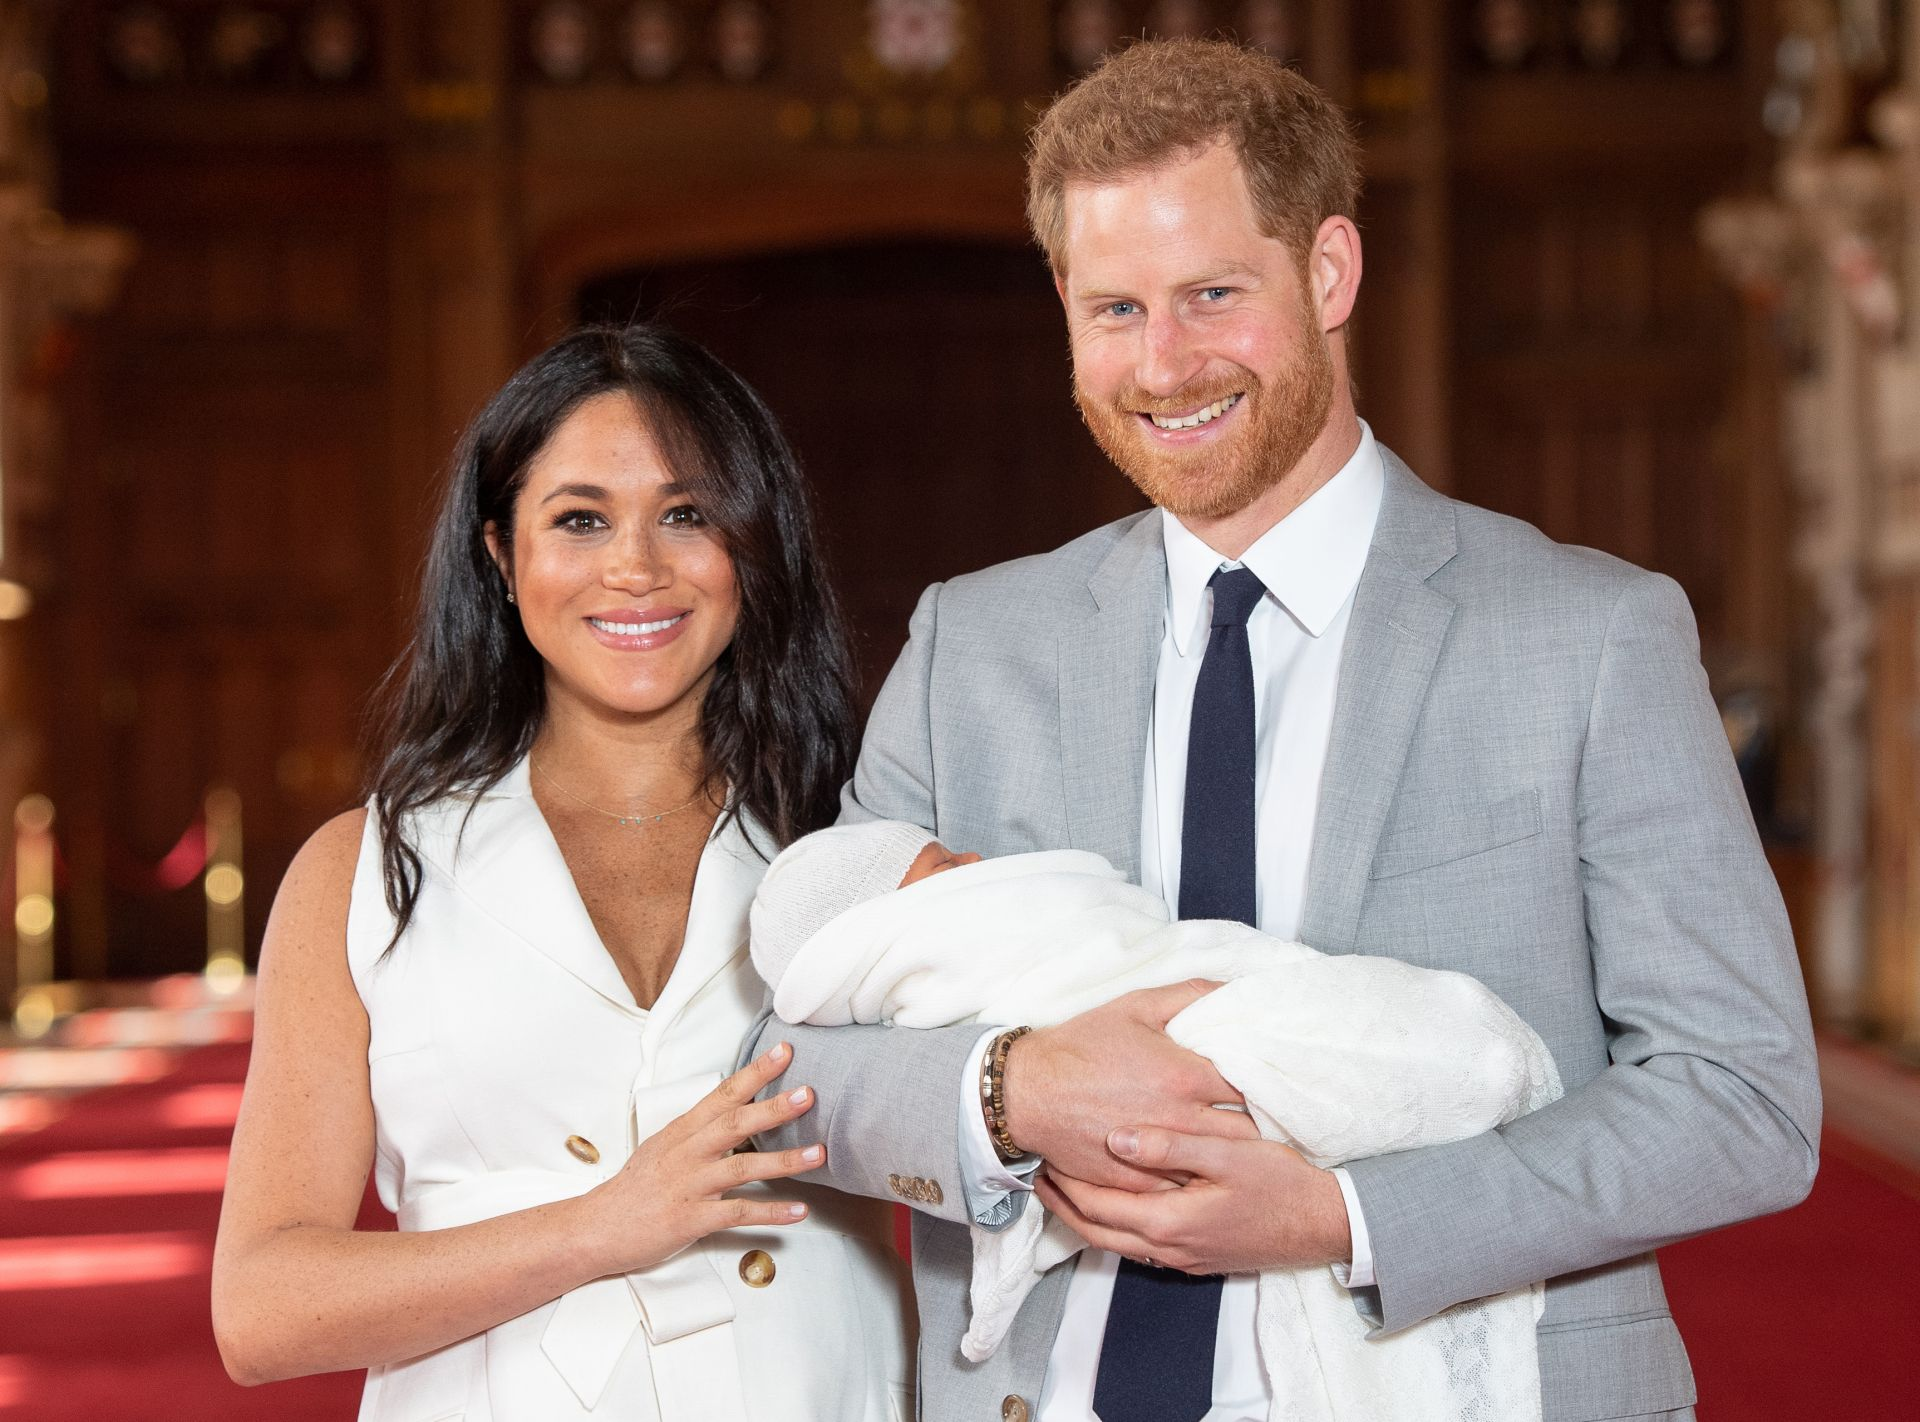 Britain's Prince Harry, Duke of Sussex (R), and his wife Meghan, Duchess of Sussex, pose for a photo with their newborn baby son in St George's Hall at Windsor Castle in Windsor, west of London on May 8, 2019; Photo: Courtesy of Dominic Lipinski/POOL/AFP